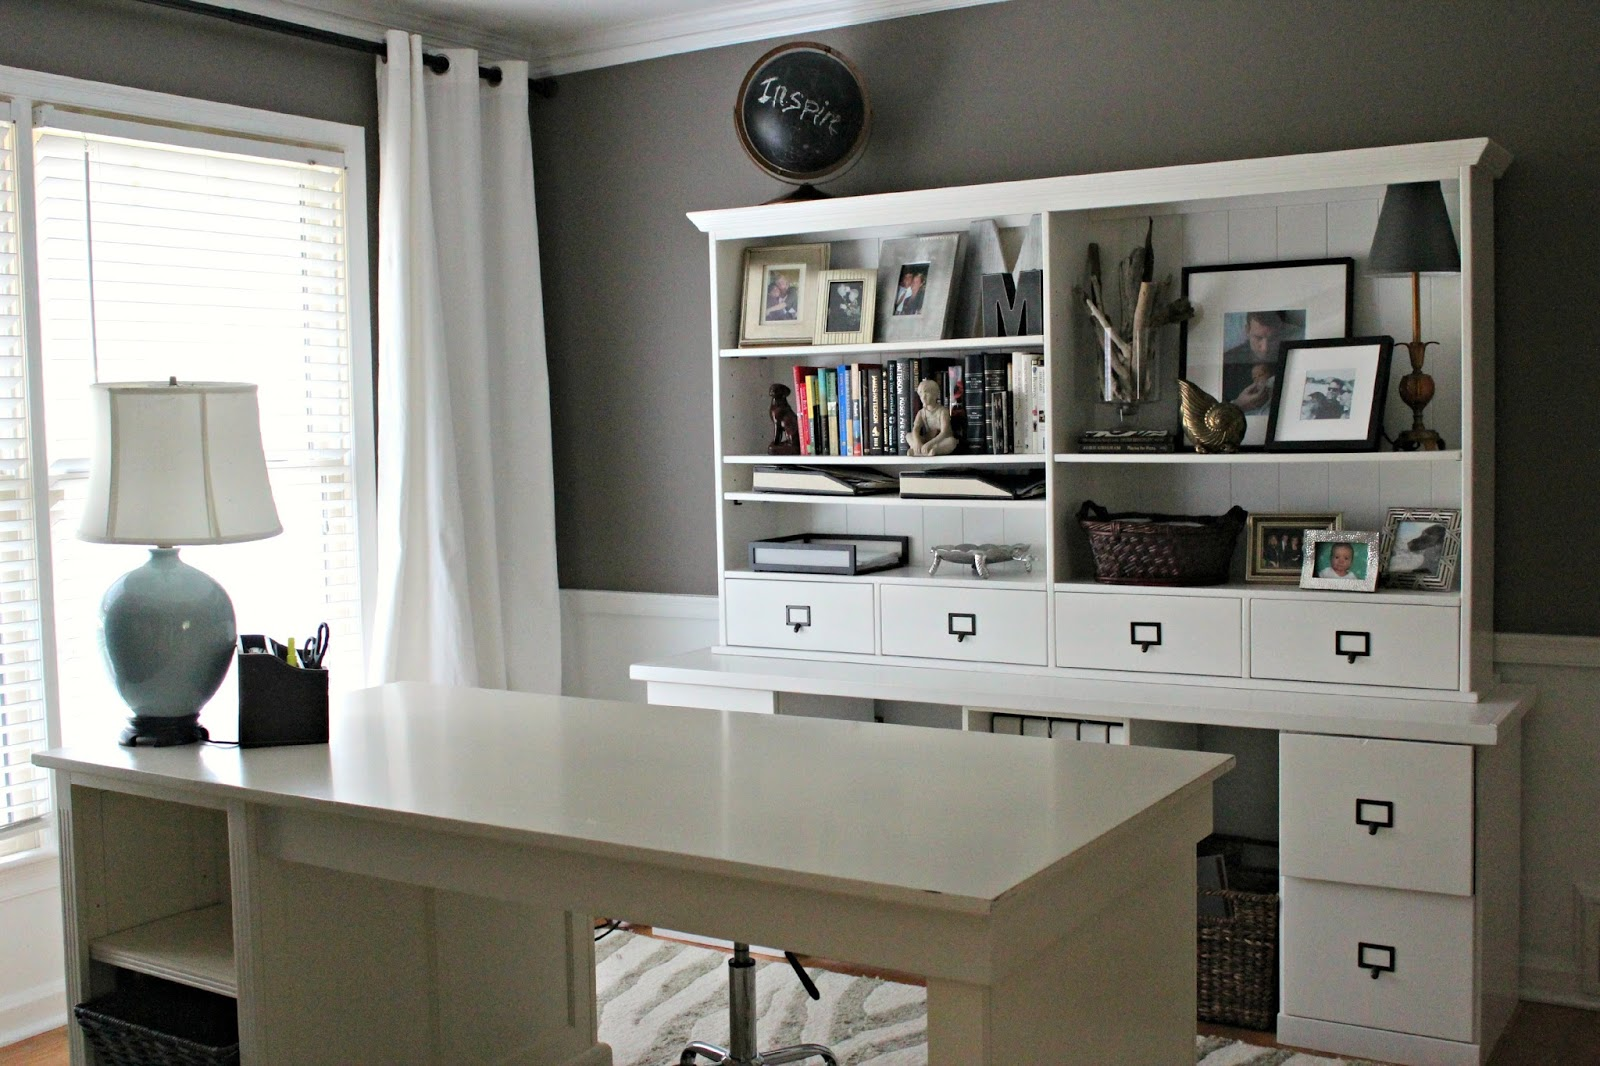 Dining Room Turned Home Office Details Southern State of Mind